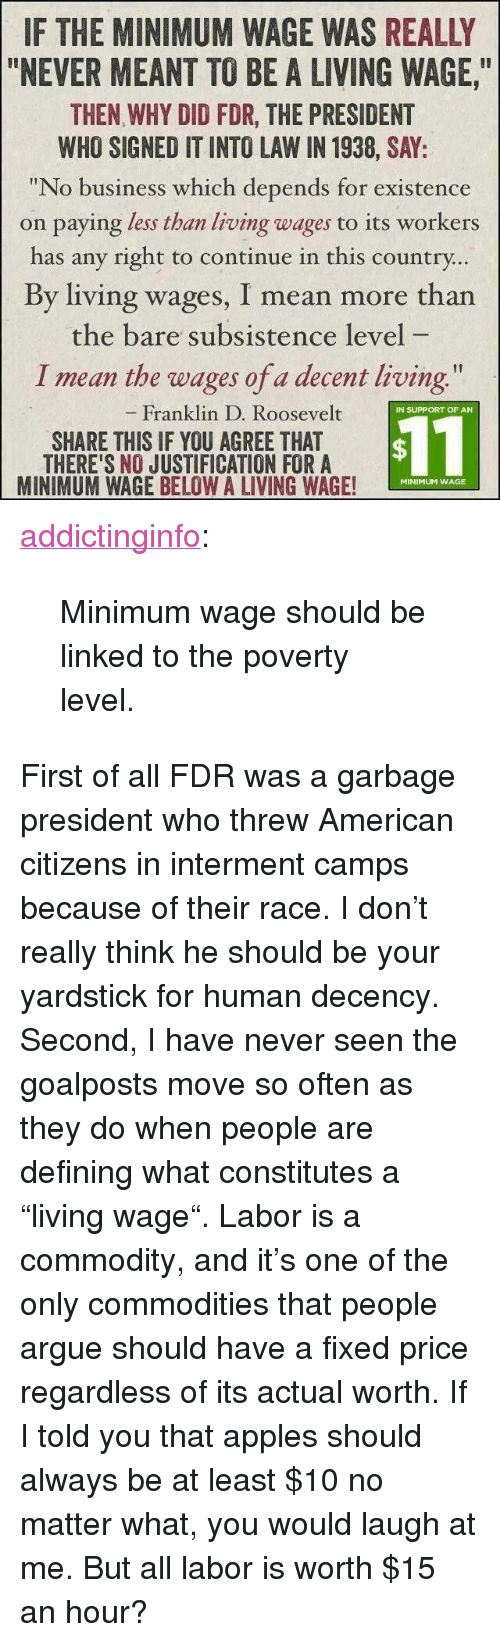 """fdr: IF THE MINIMUM WAGE WAS REALLY  """"NEVER MEANT TO BE A LIVING WAGE,  THEN WHY DID FDR, THE PRESIDENT  WHO SIGNED IT INTO LAW IN 1938, SAY:  """"No business which depends for existence  on paying less than living wages to its workers  has any right to continue in this country  By living wages, I mean more than  the bare subsistence level  I mean the wages of a decent living  Franklin D. Roosevelt  IN SUPPORT OF AN  SHARE THIS IF YOU AGREE THAT  THERE'S NO JUSTIFICATION FORA  MINIMUM WAGE BELOW A LIVING WAGE!  $11  MINIMUM WAGE <p><a href=""""http://addictinginfo.tumblr.com/post/83841892544/minimum-wage-should-be-linked-to-the-poverty"""" class=""""tumblr_blog"""">addictinginfo</a>:</p>  <blockquote><p>Minimum wage should be linked to the poverty level.</p></blockquote>  <p>First of all FDR was a garbage president who threw American citizens in interment camps because of their race. I don't really think he should be your yardstick for human decency.</p><p>Second, I have never seen the goalposts move so often as they do when people are defining what constitutes a """"living wage"""". Labor is a commodity, and it's one of the only commodities that people argue should have a fixed price regardless of its actual worth. If I told you that apples should always be at least $10 no matter what, you would laugh at me. But all labor is worth $15 an hour?</p>"""